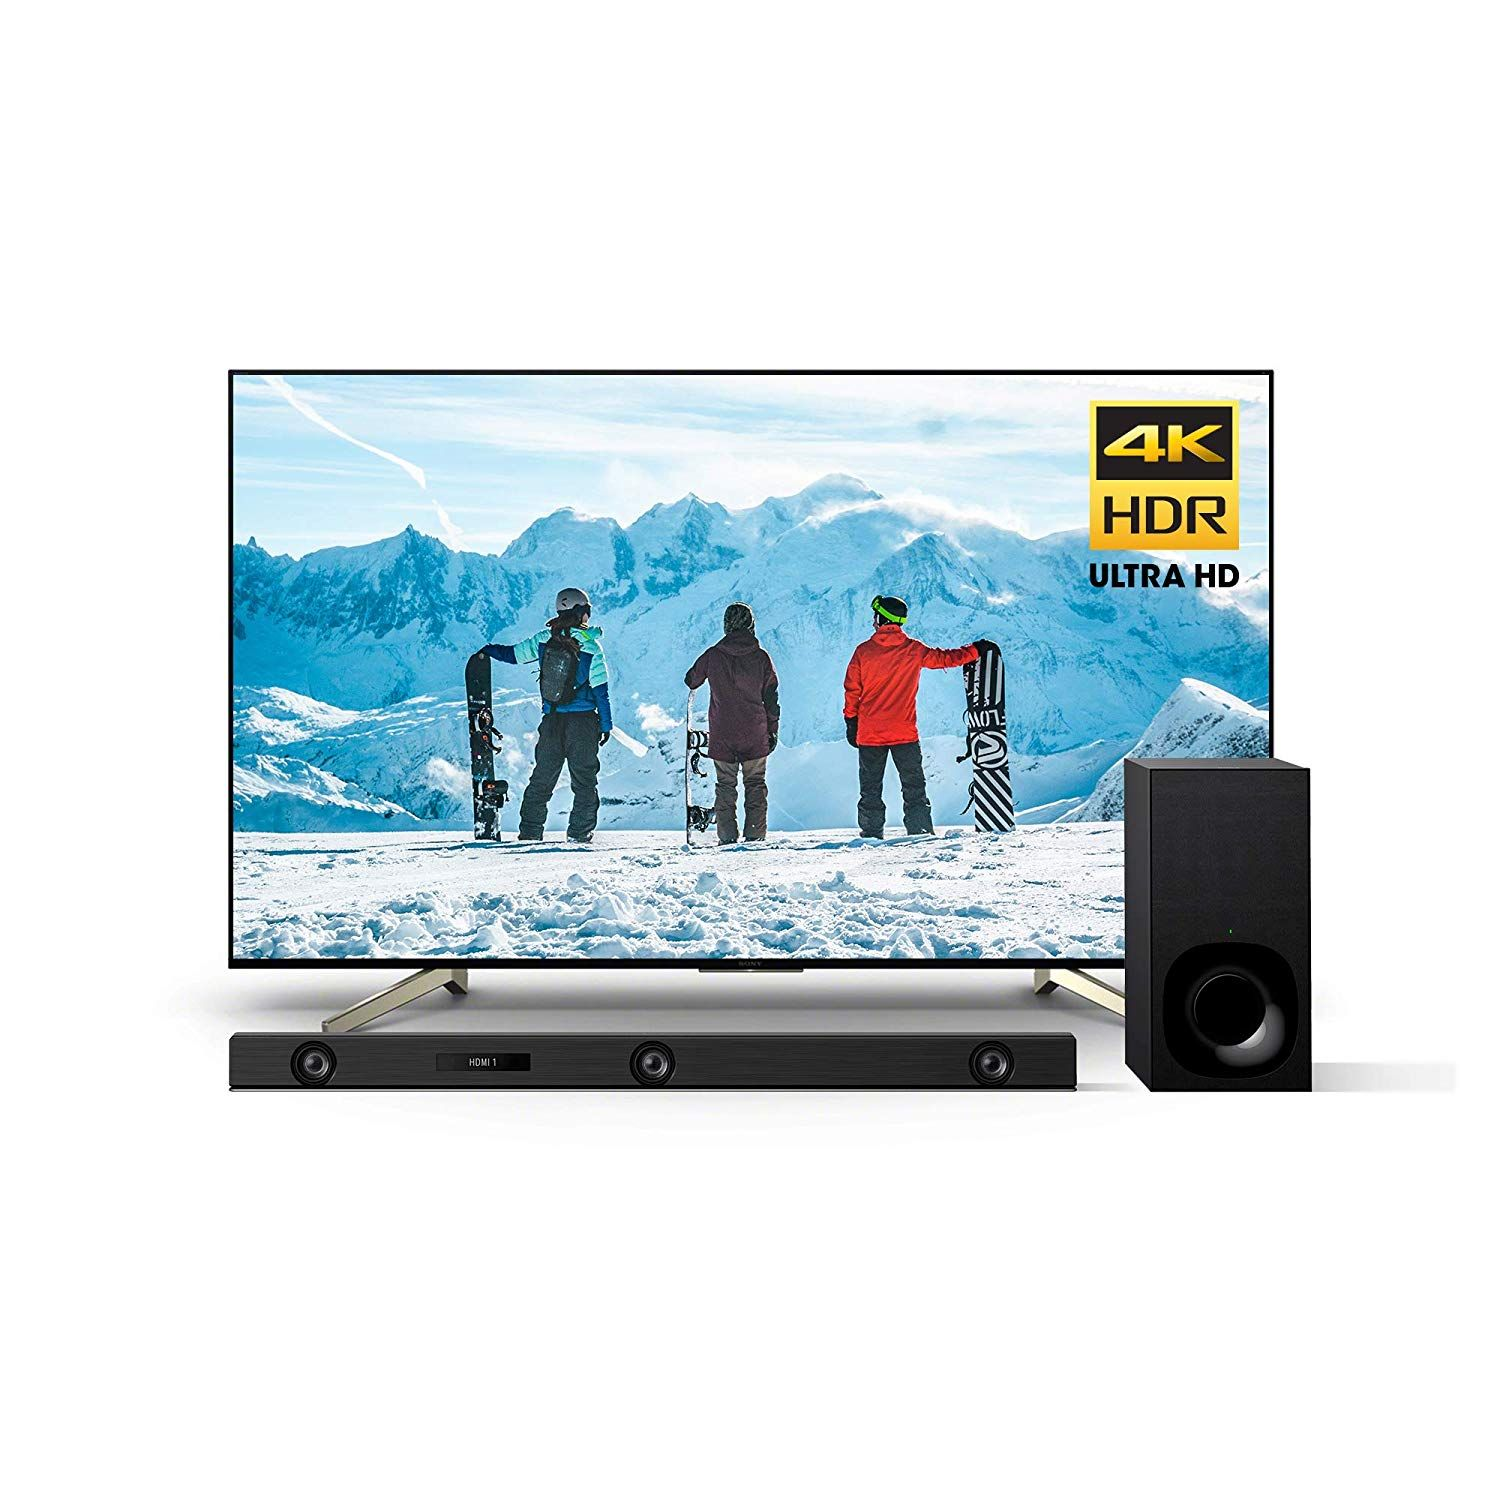 Sony Xbr65x850f 65 Inch 4k Ultra Hd Smart Led Tv And Z9f 3 1ch